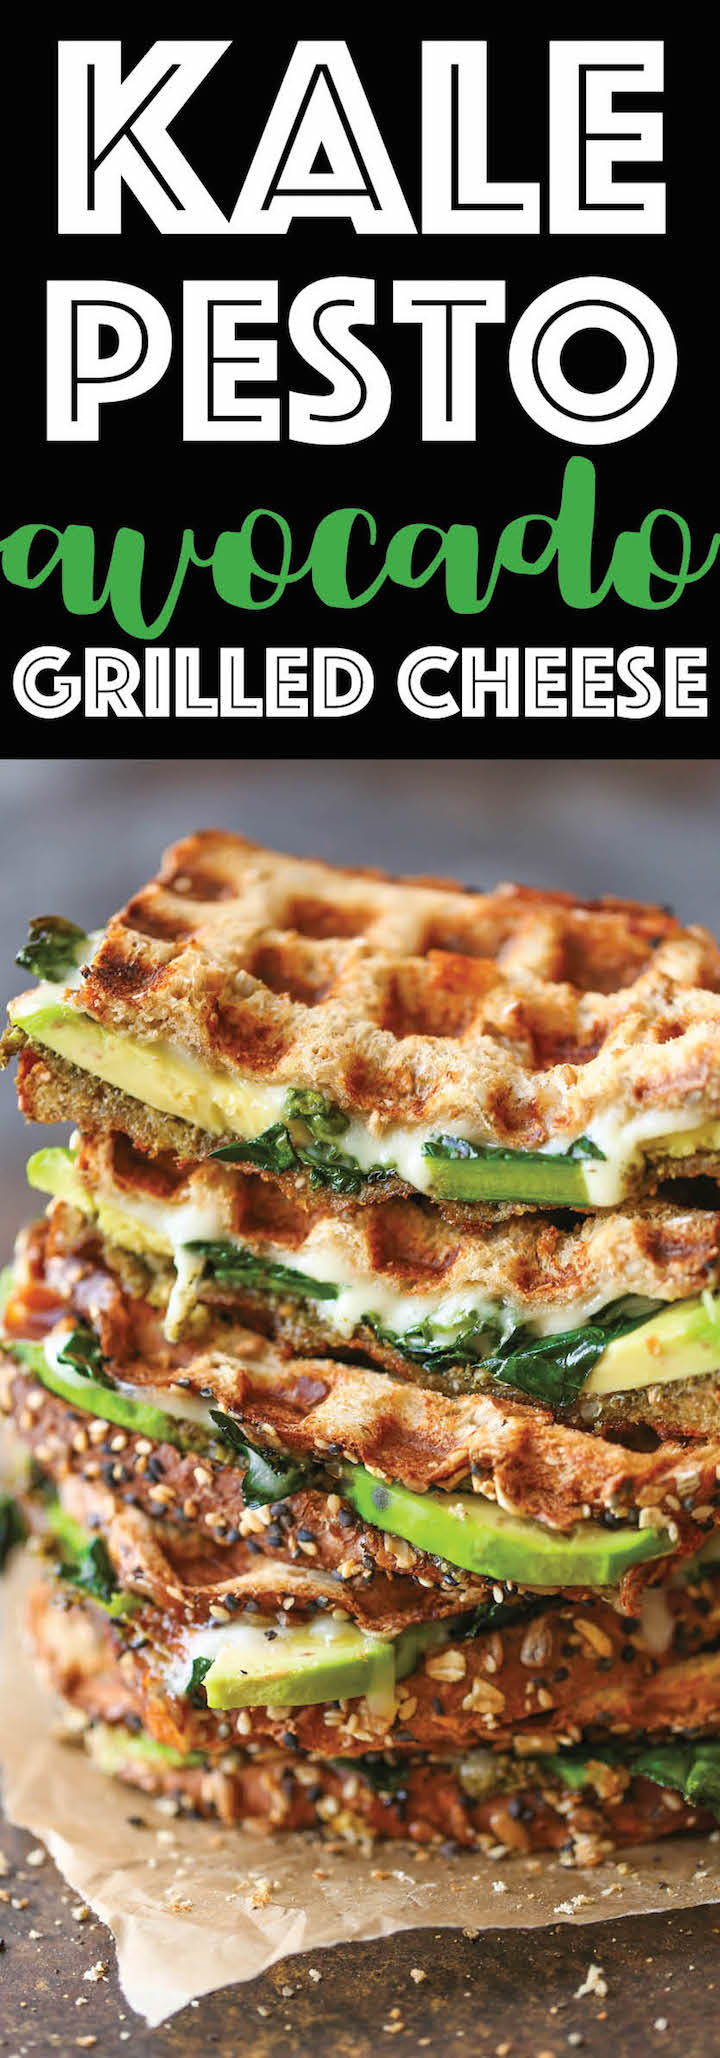 Kale Pesto Avocado Grilled Cheese - Hearty, cheesy, nutritious and filled with plenty of greens! Can be served for lunch or dinner for the entire family!